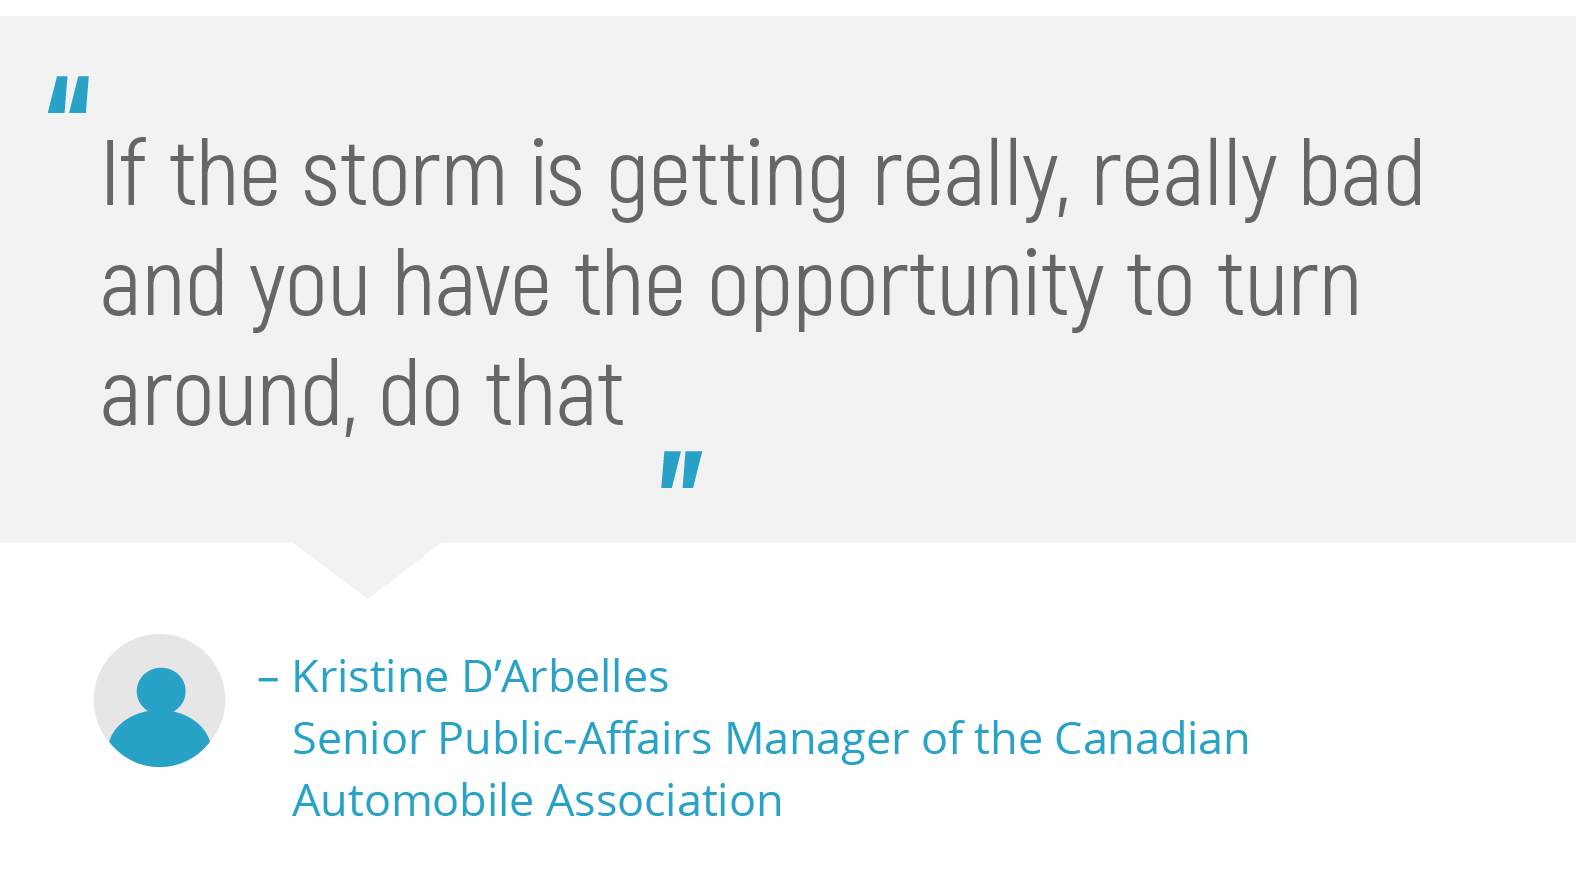 Pull quote on driving in poor weather from Kristine D'Arbelles